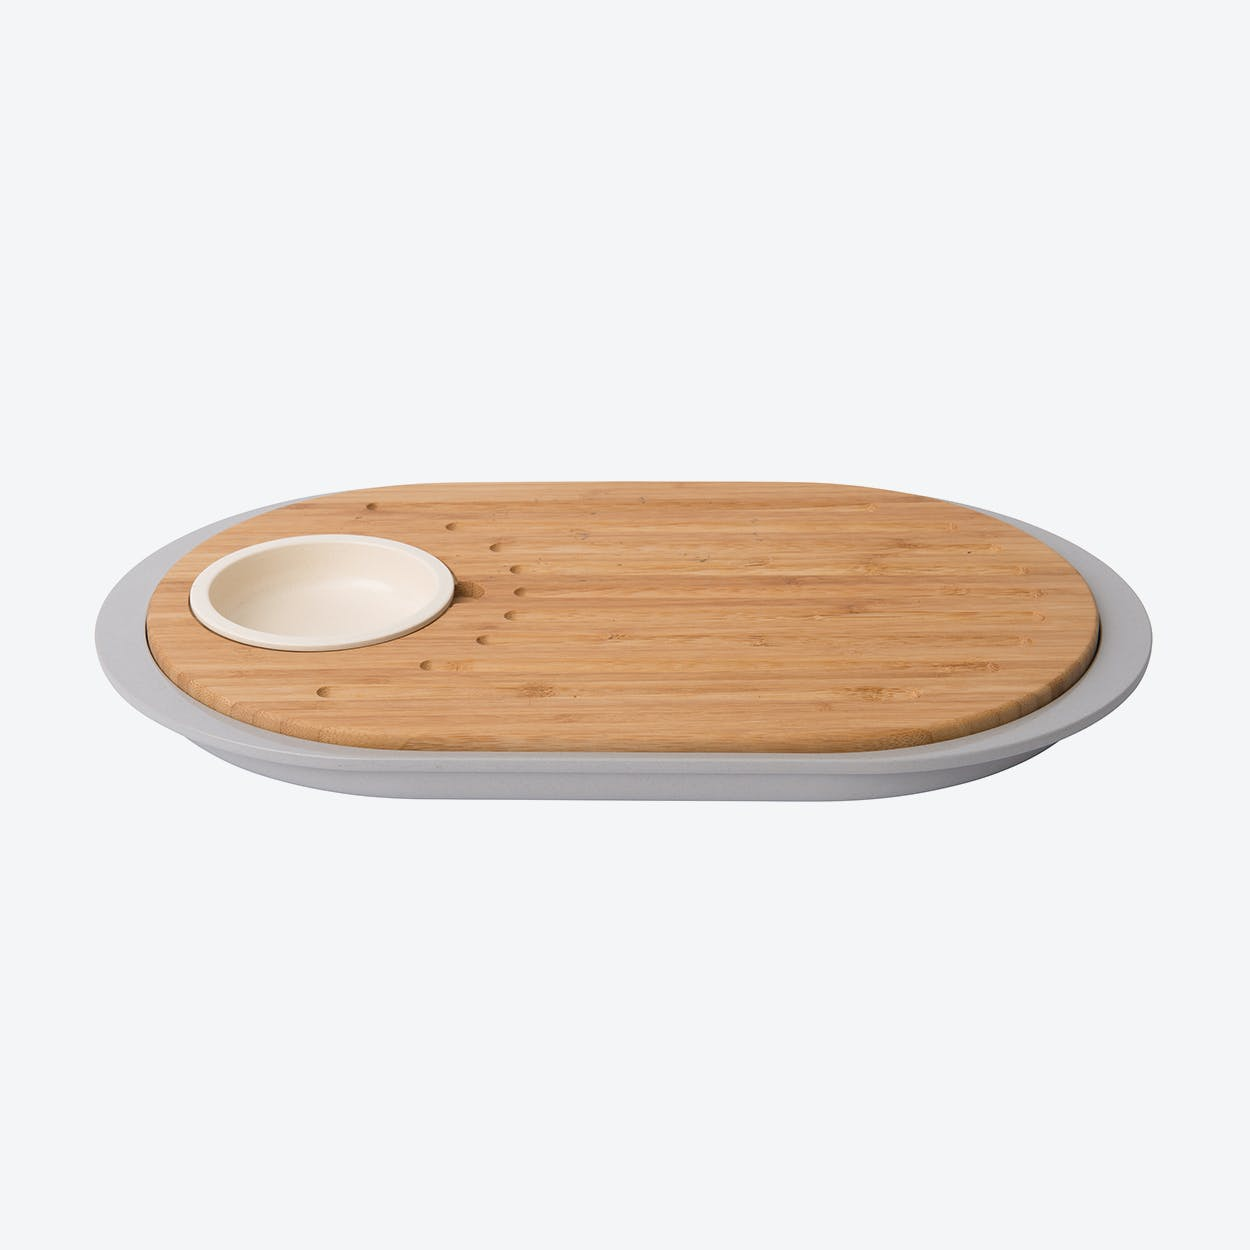 2-Sided Bamboo Tapas Cutting Board w/ Tray, Set of 2